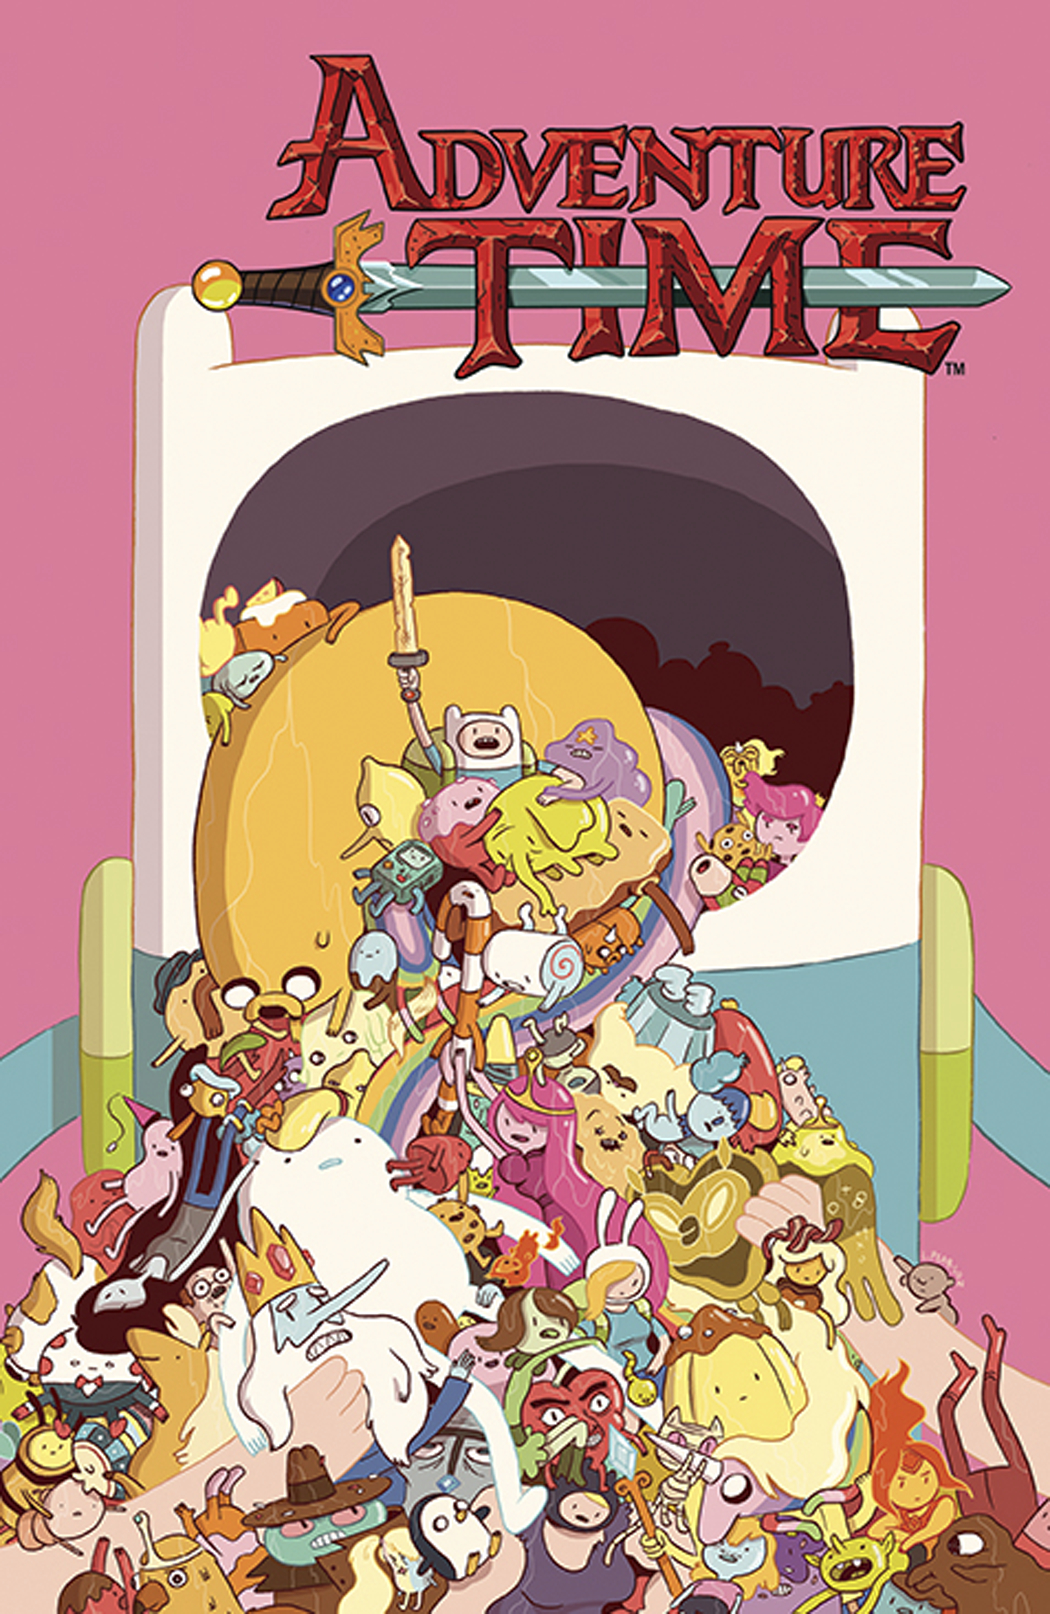 ADVENTURE TIME #25 MAIN CVRS